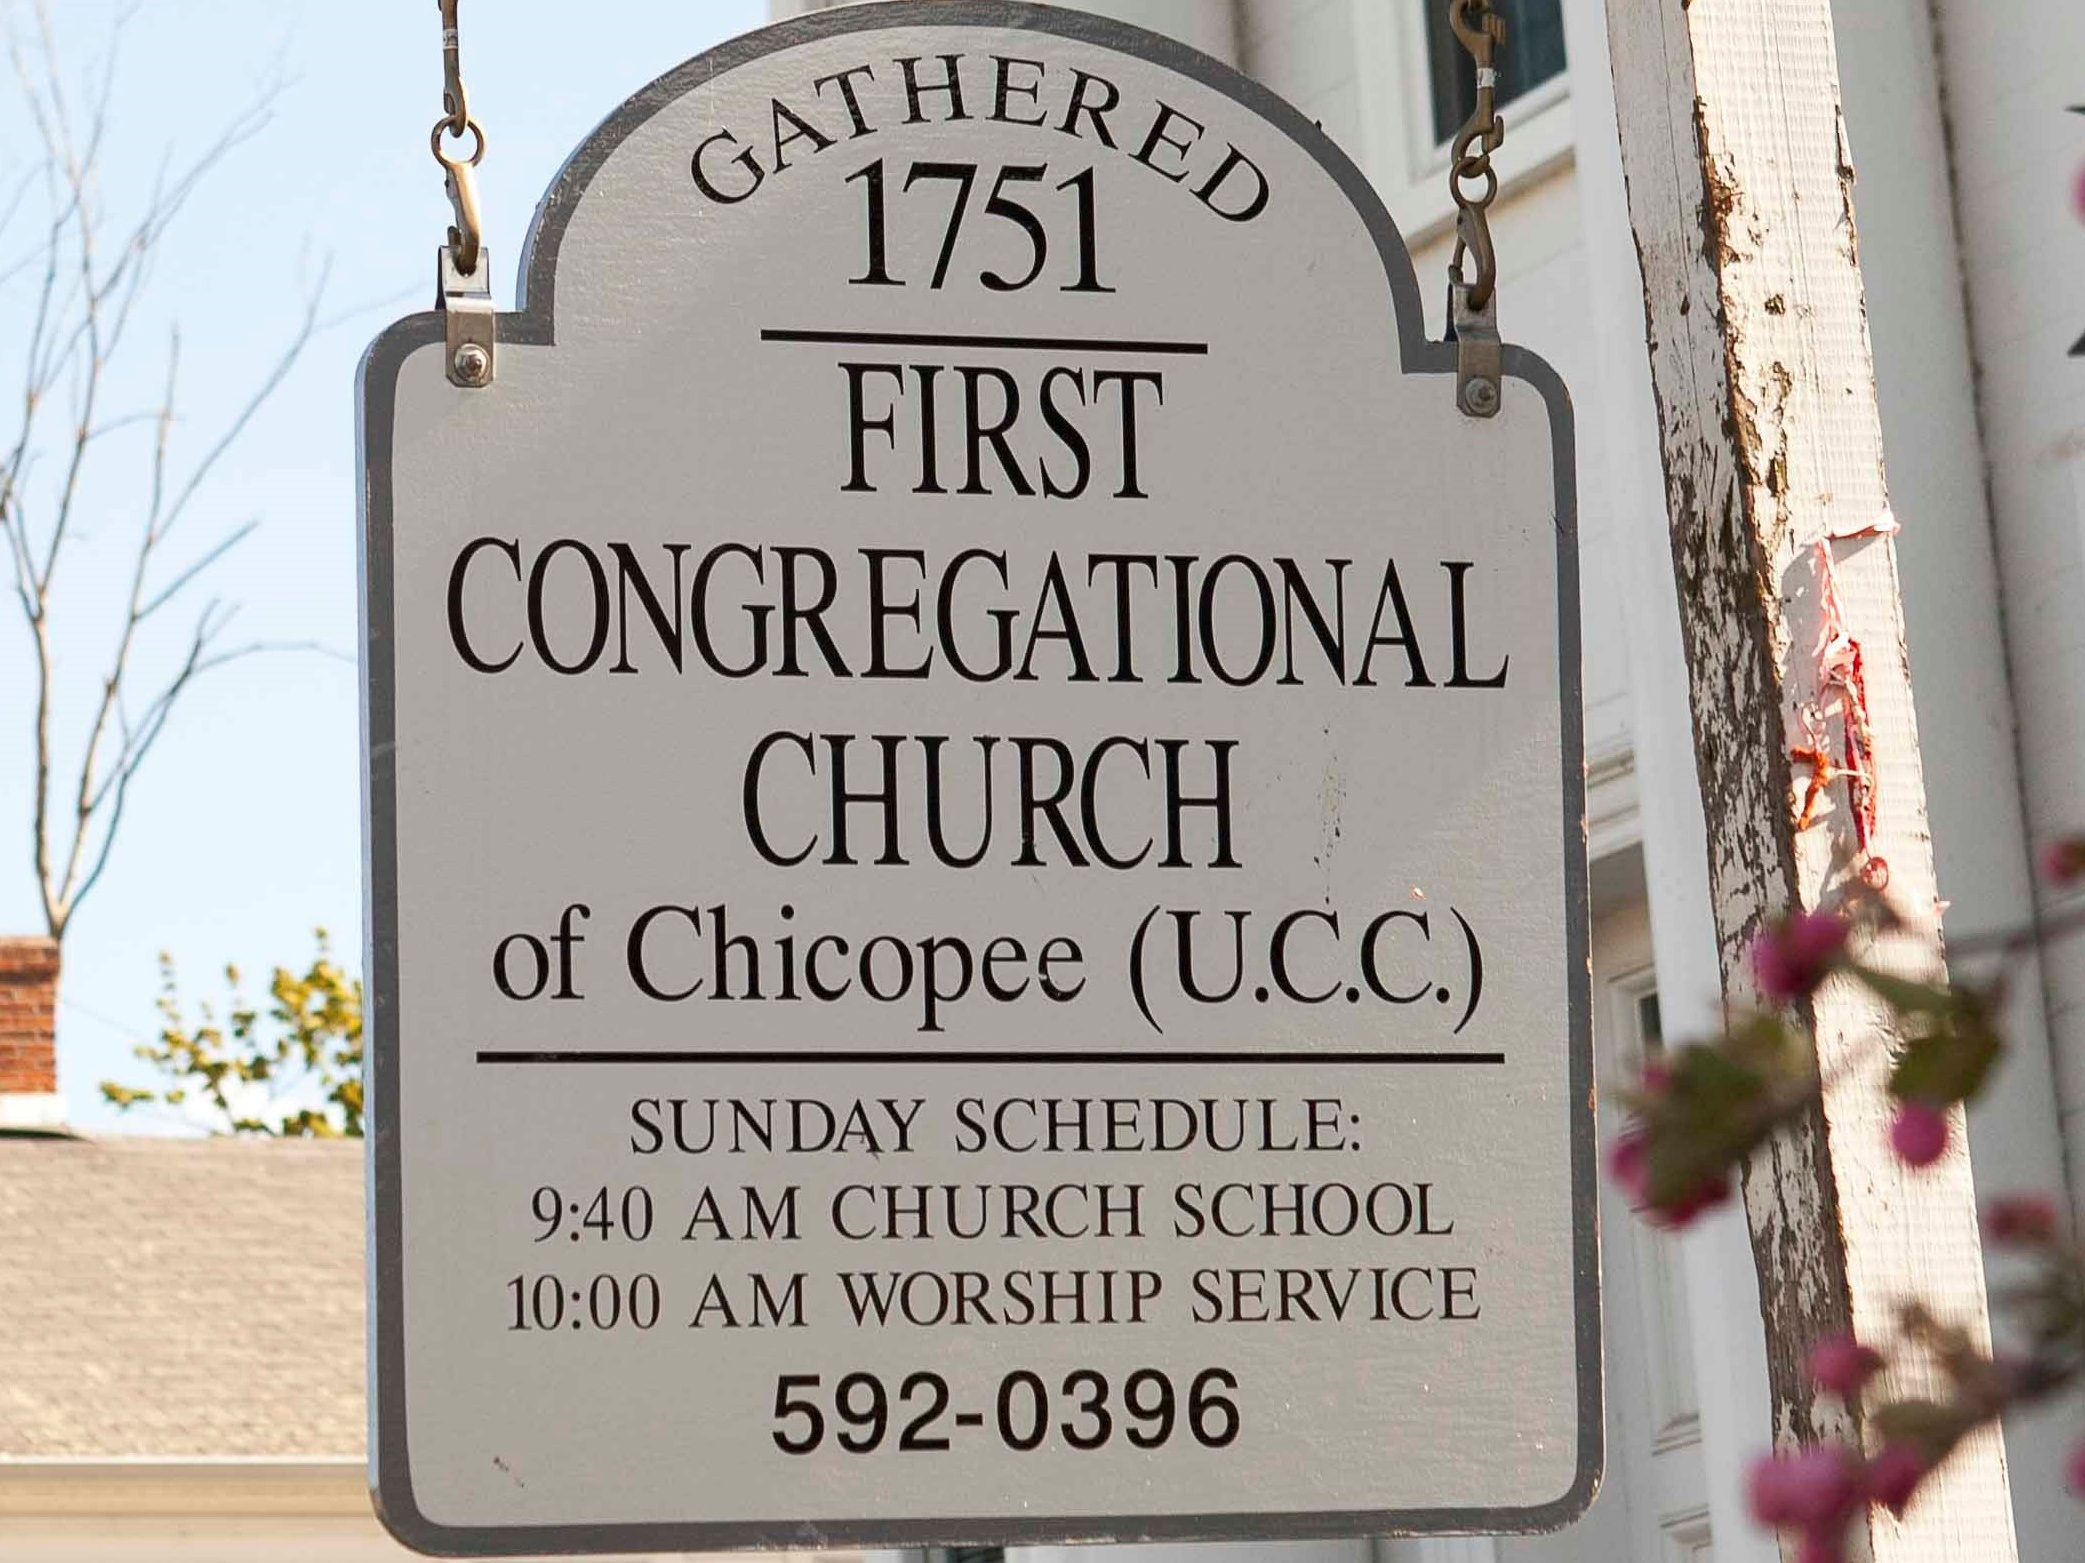 First Congregational Church of Chicopee